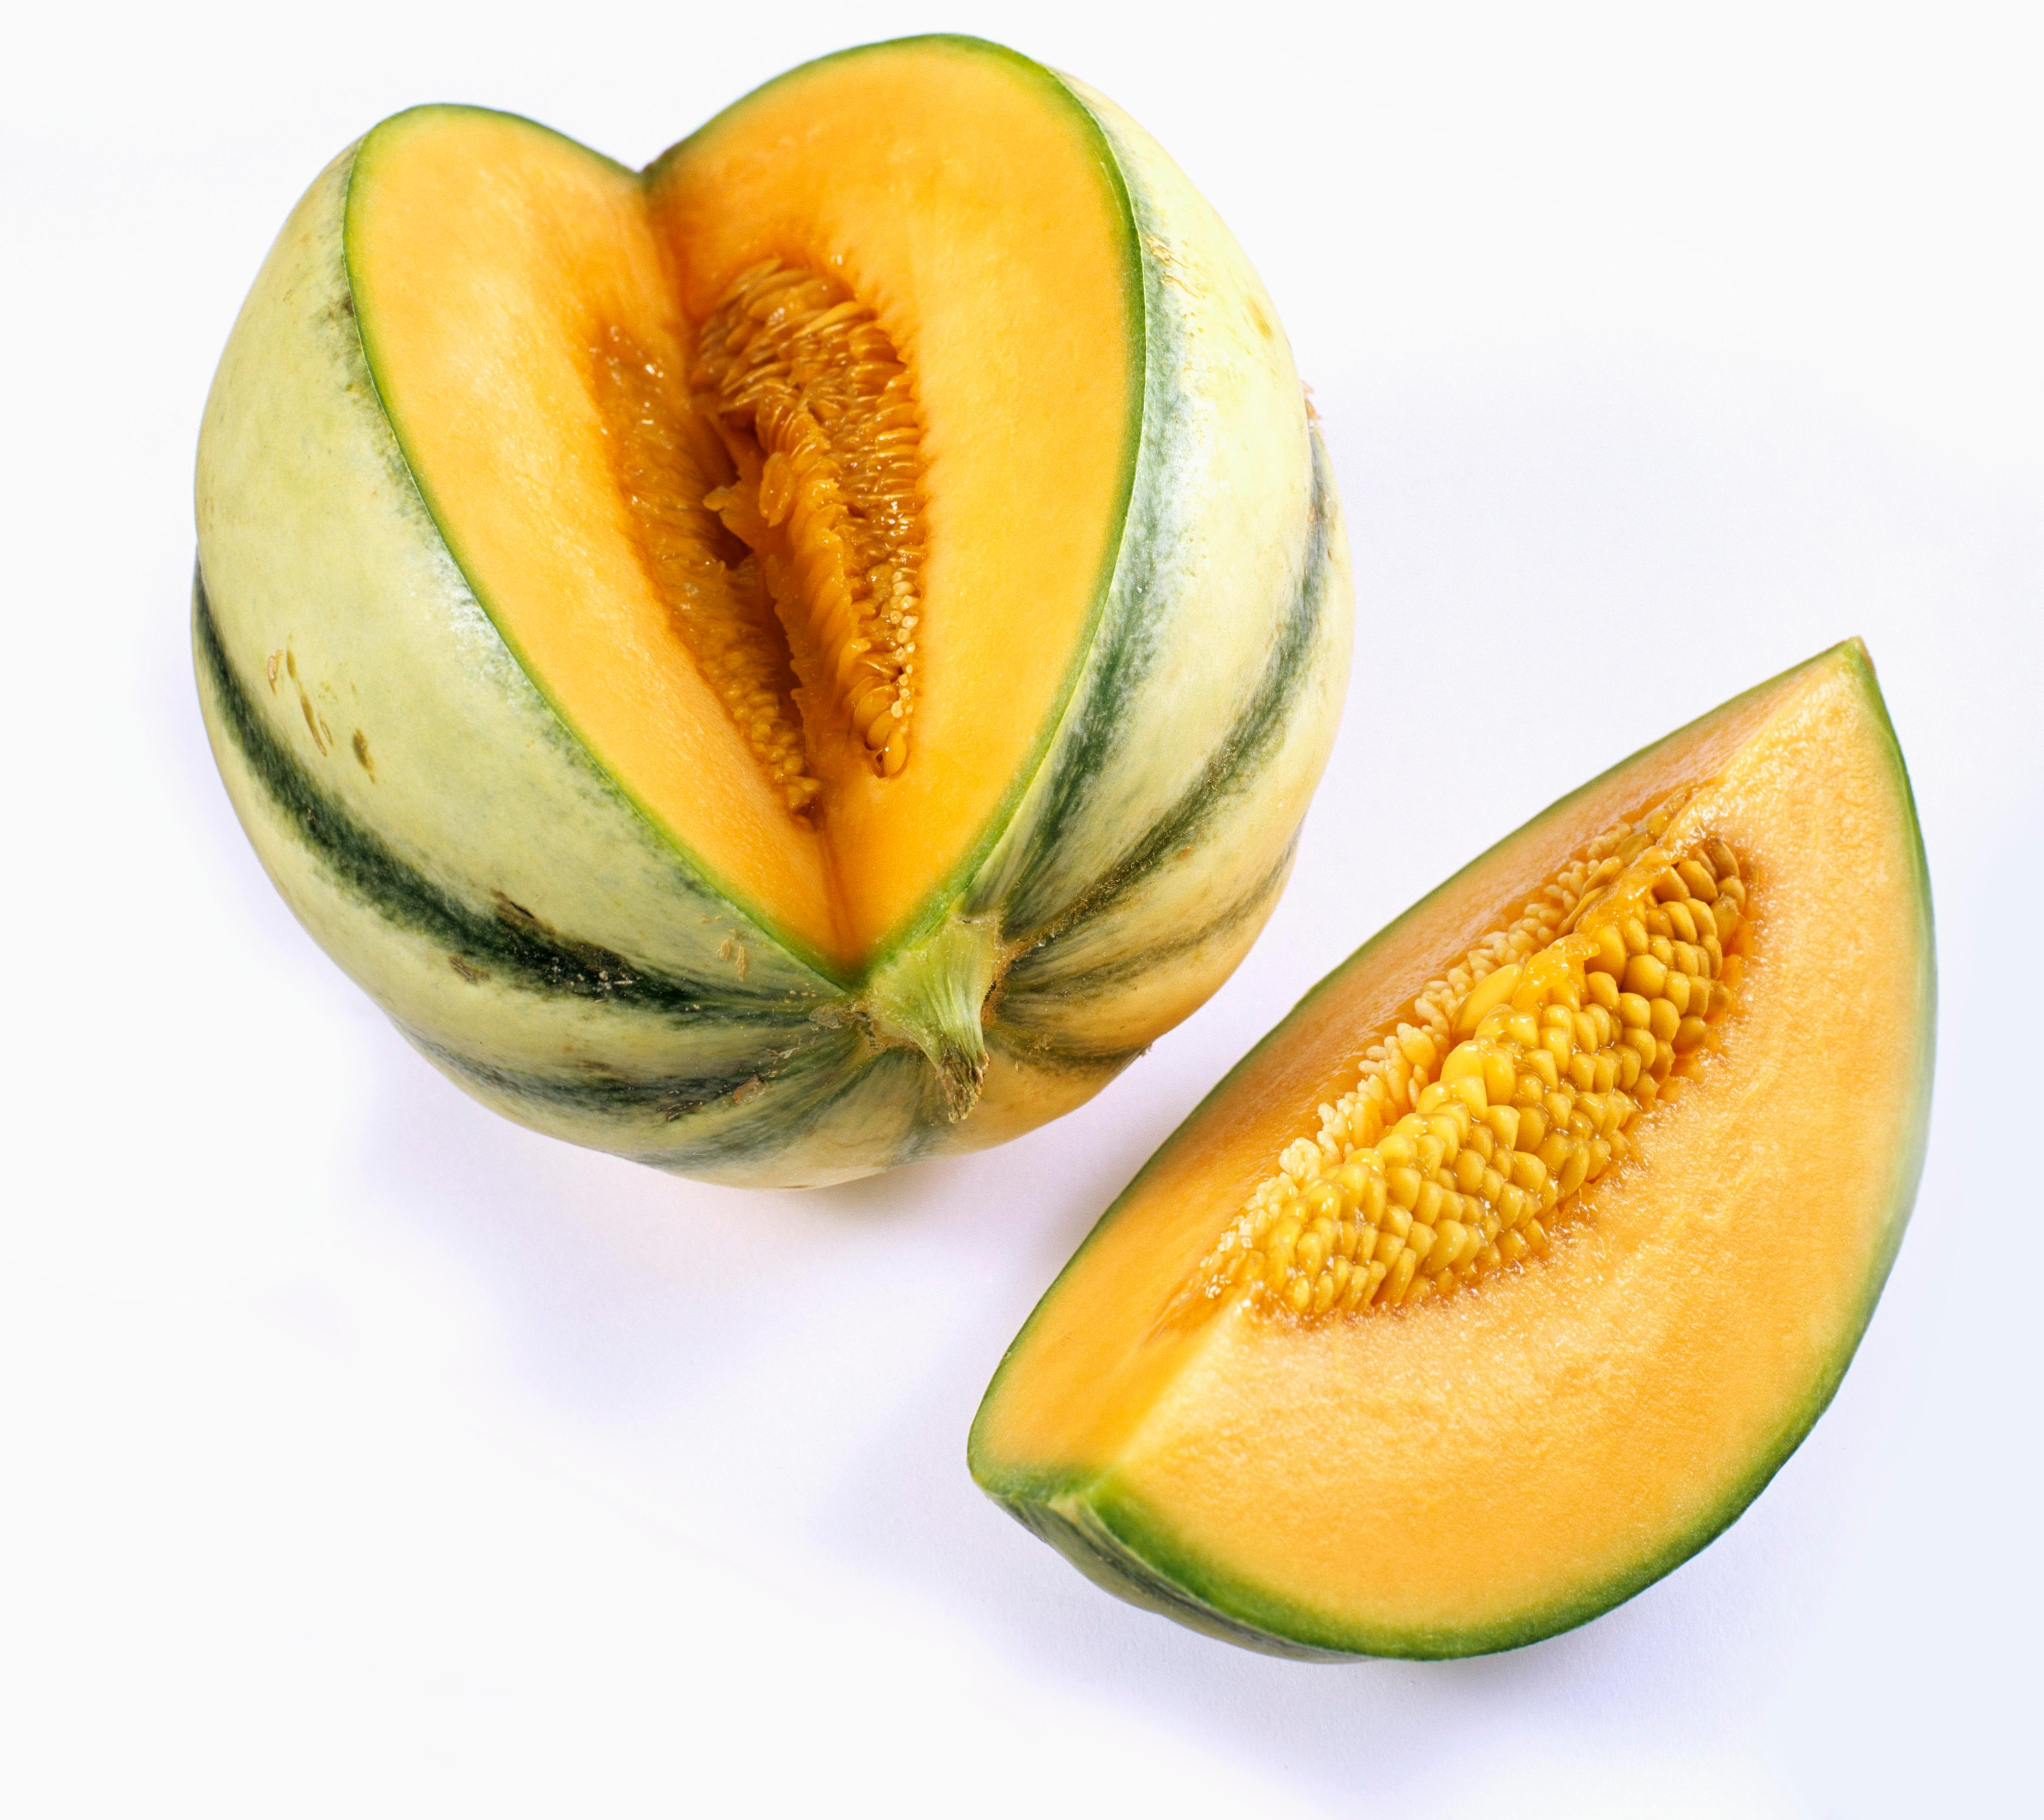 Five die and one pregnant woman suffers a miscarriage after eating contaminated MELONS